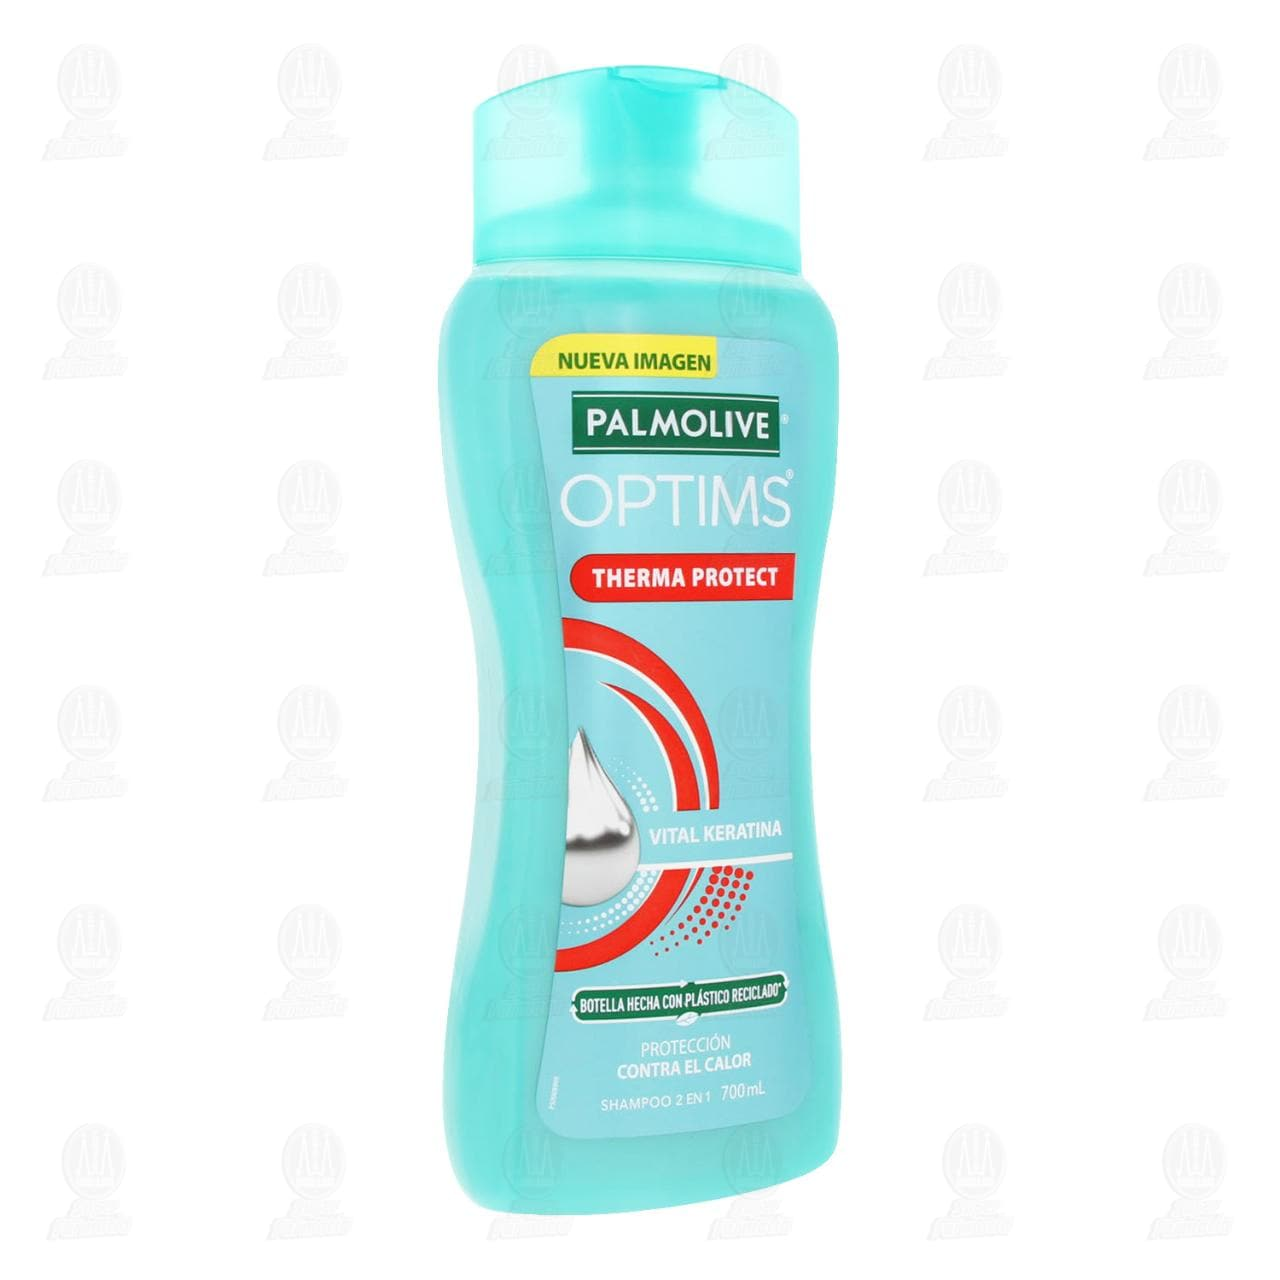 Shampoo Palmolive Optims Therma Protect, 700 ml.